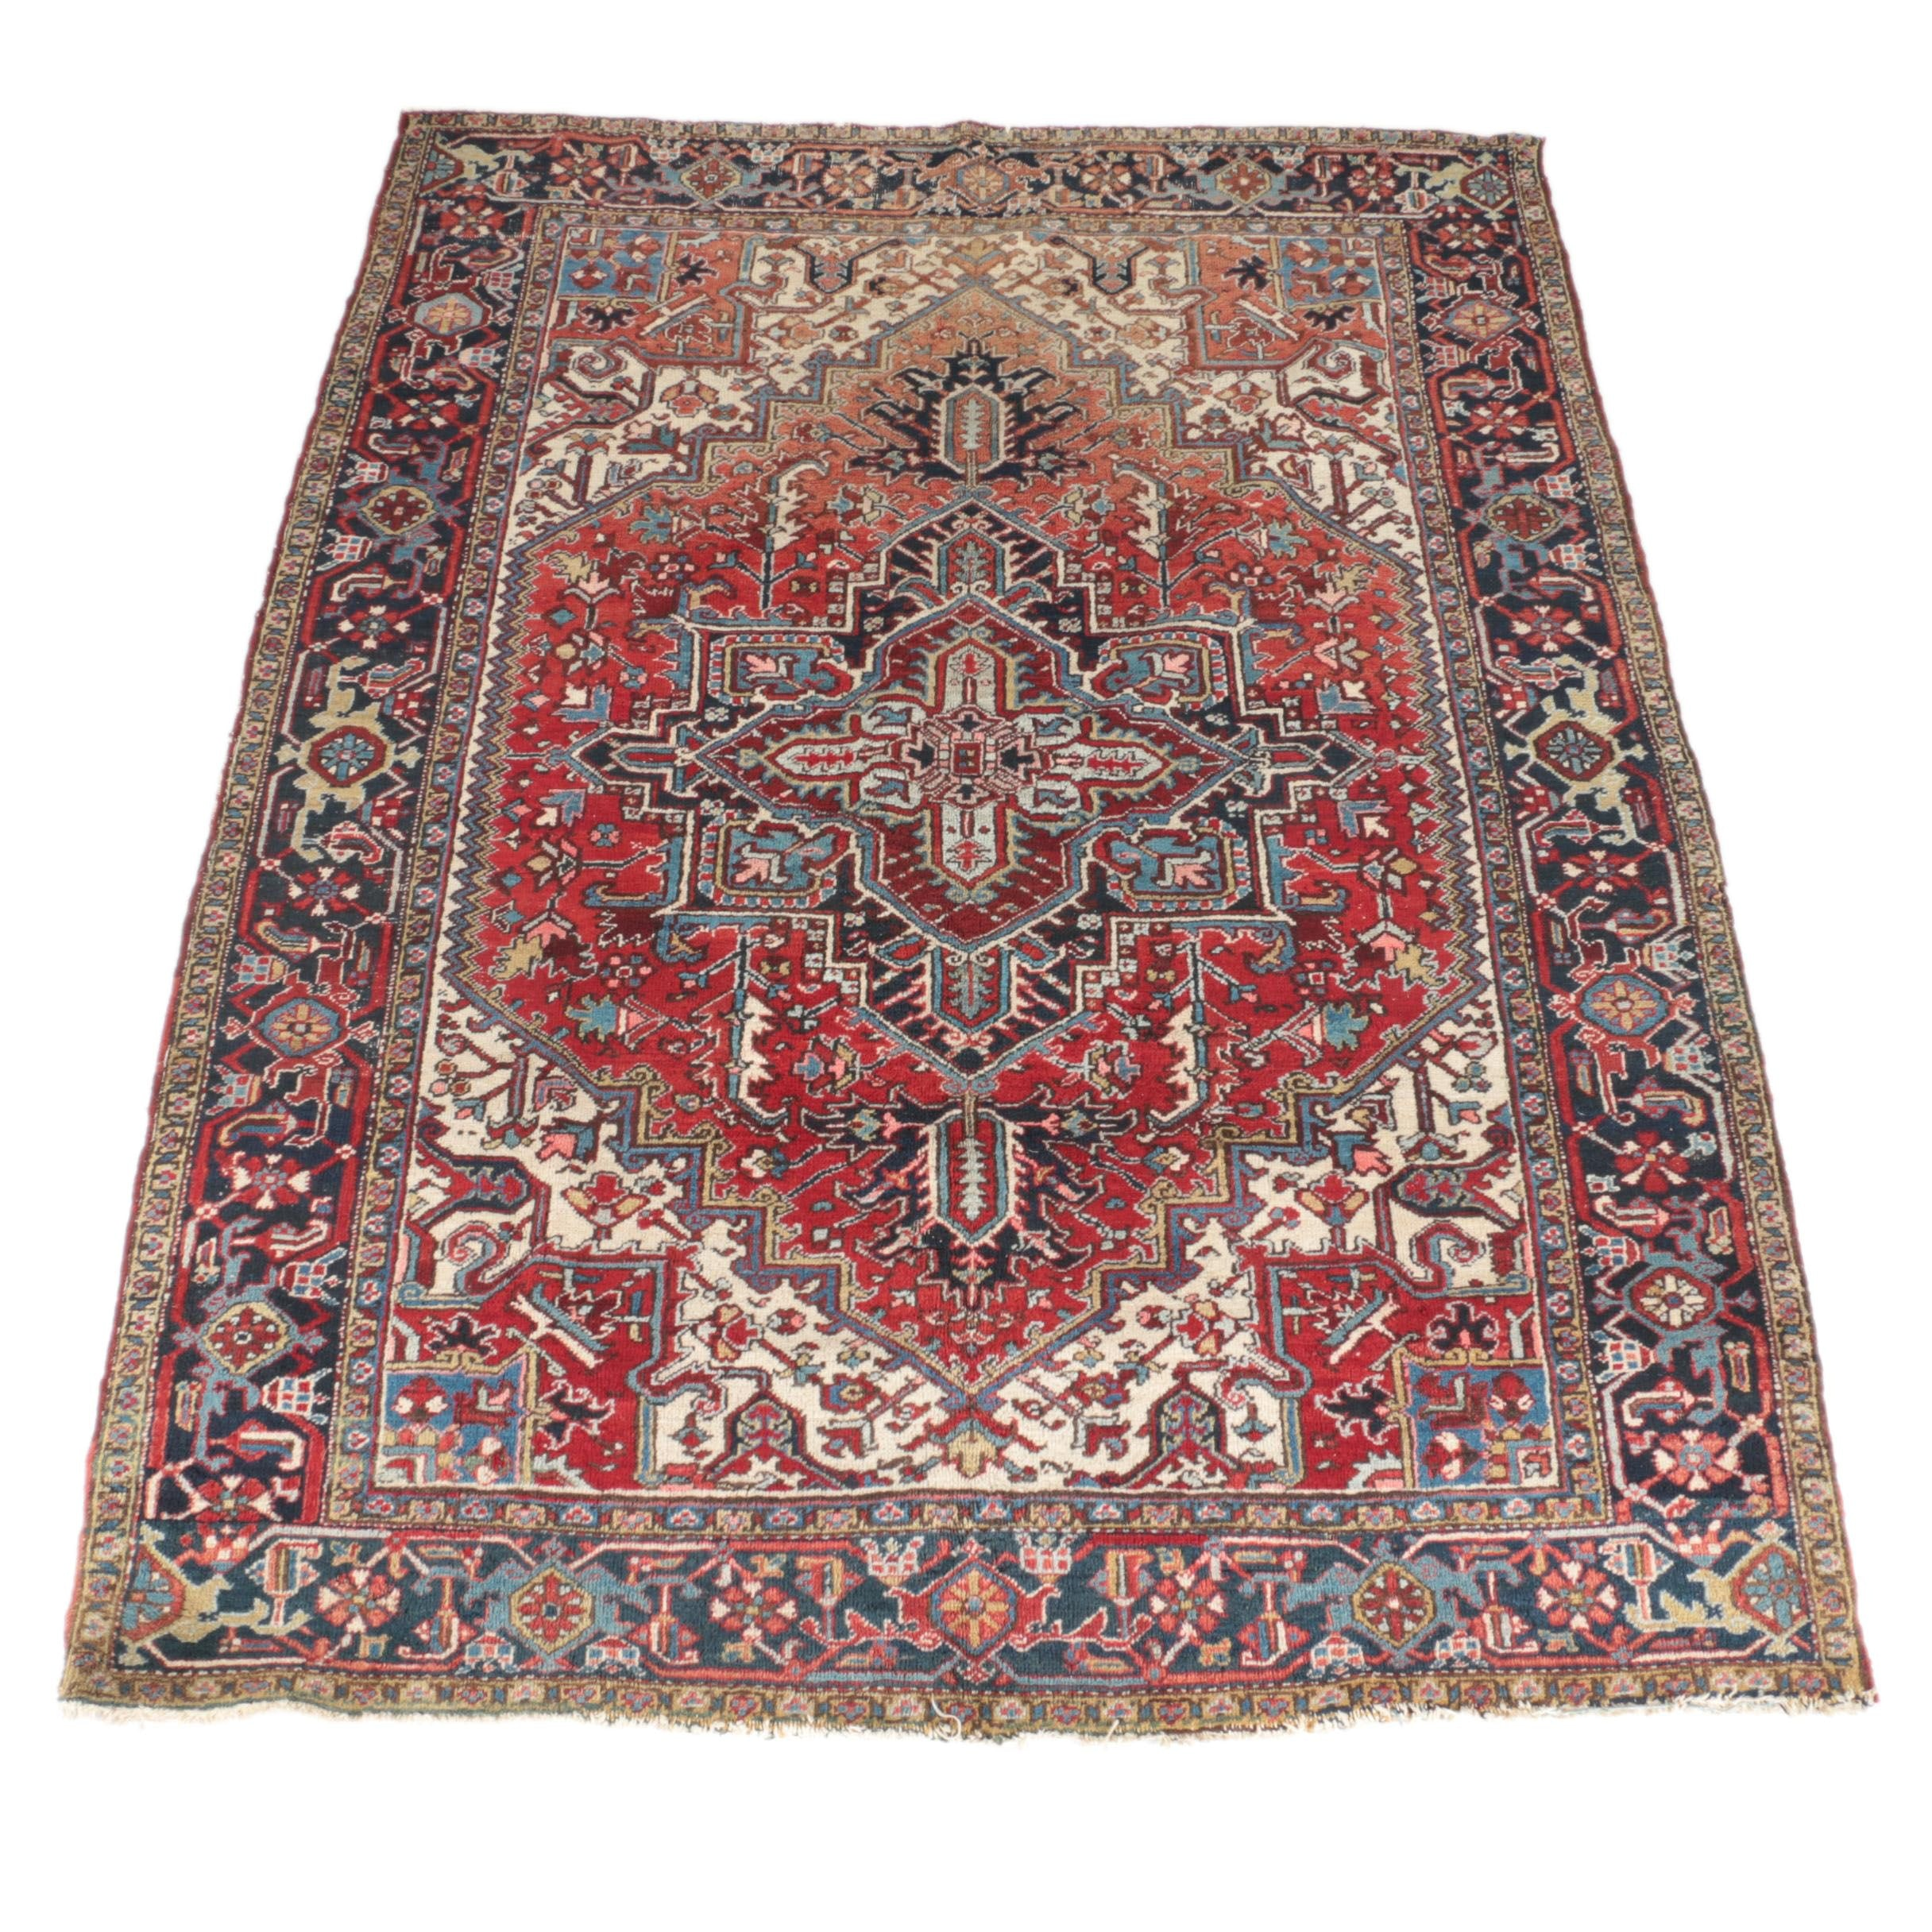 Semi-Antique Hand-Knotted Persian Heriz Area Rug